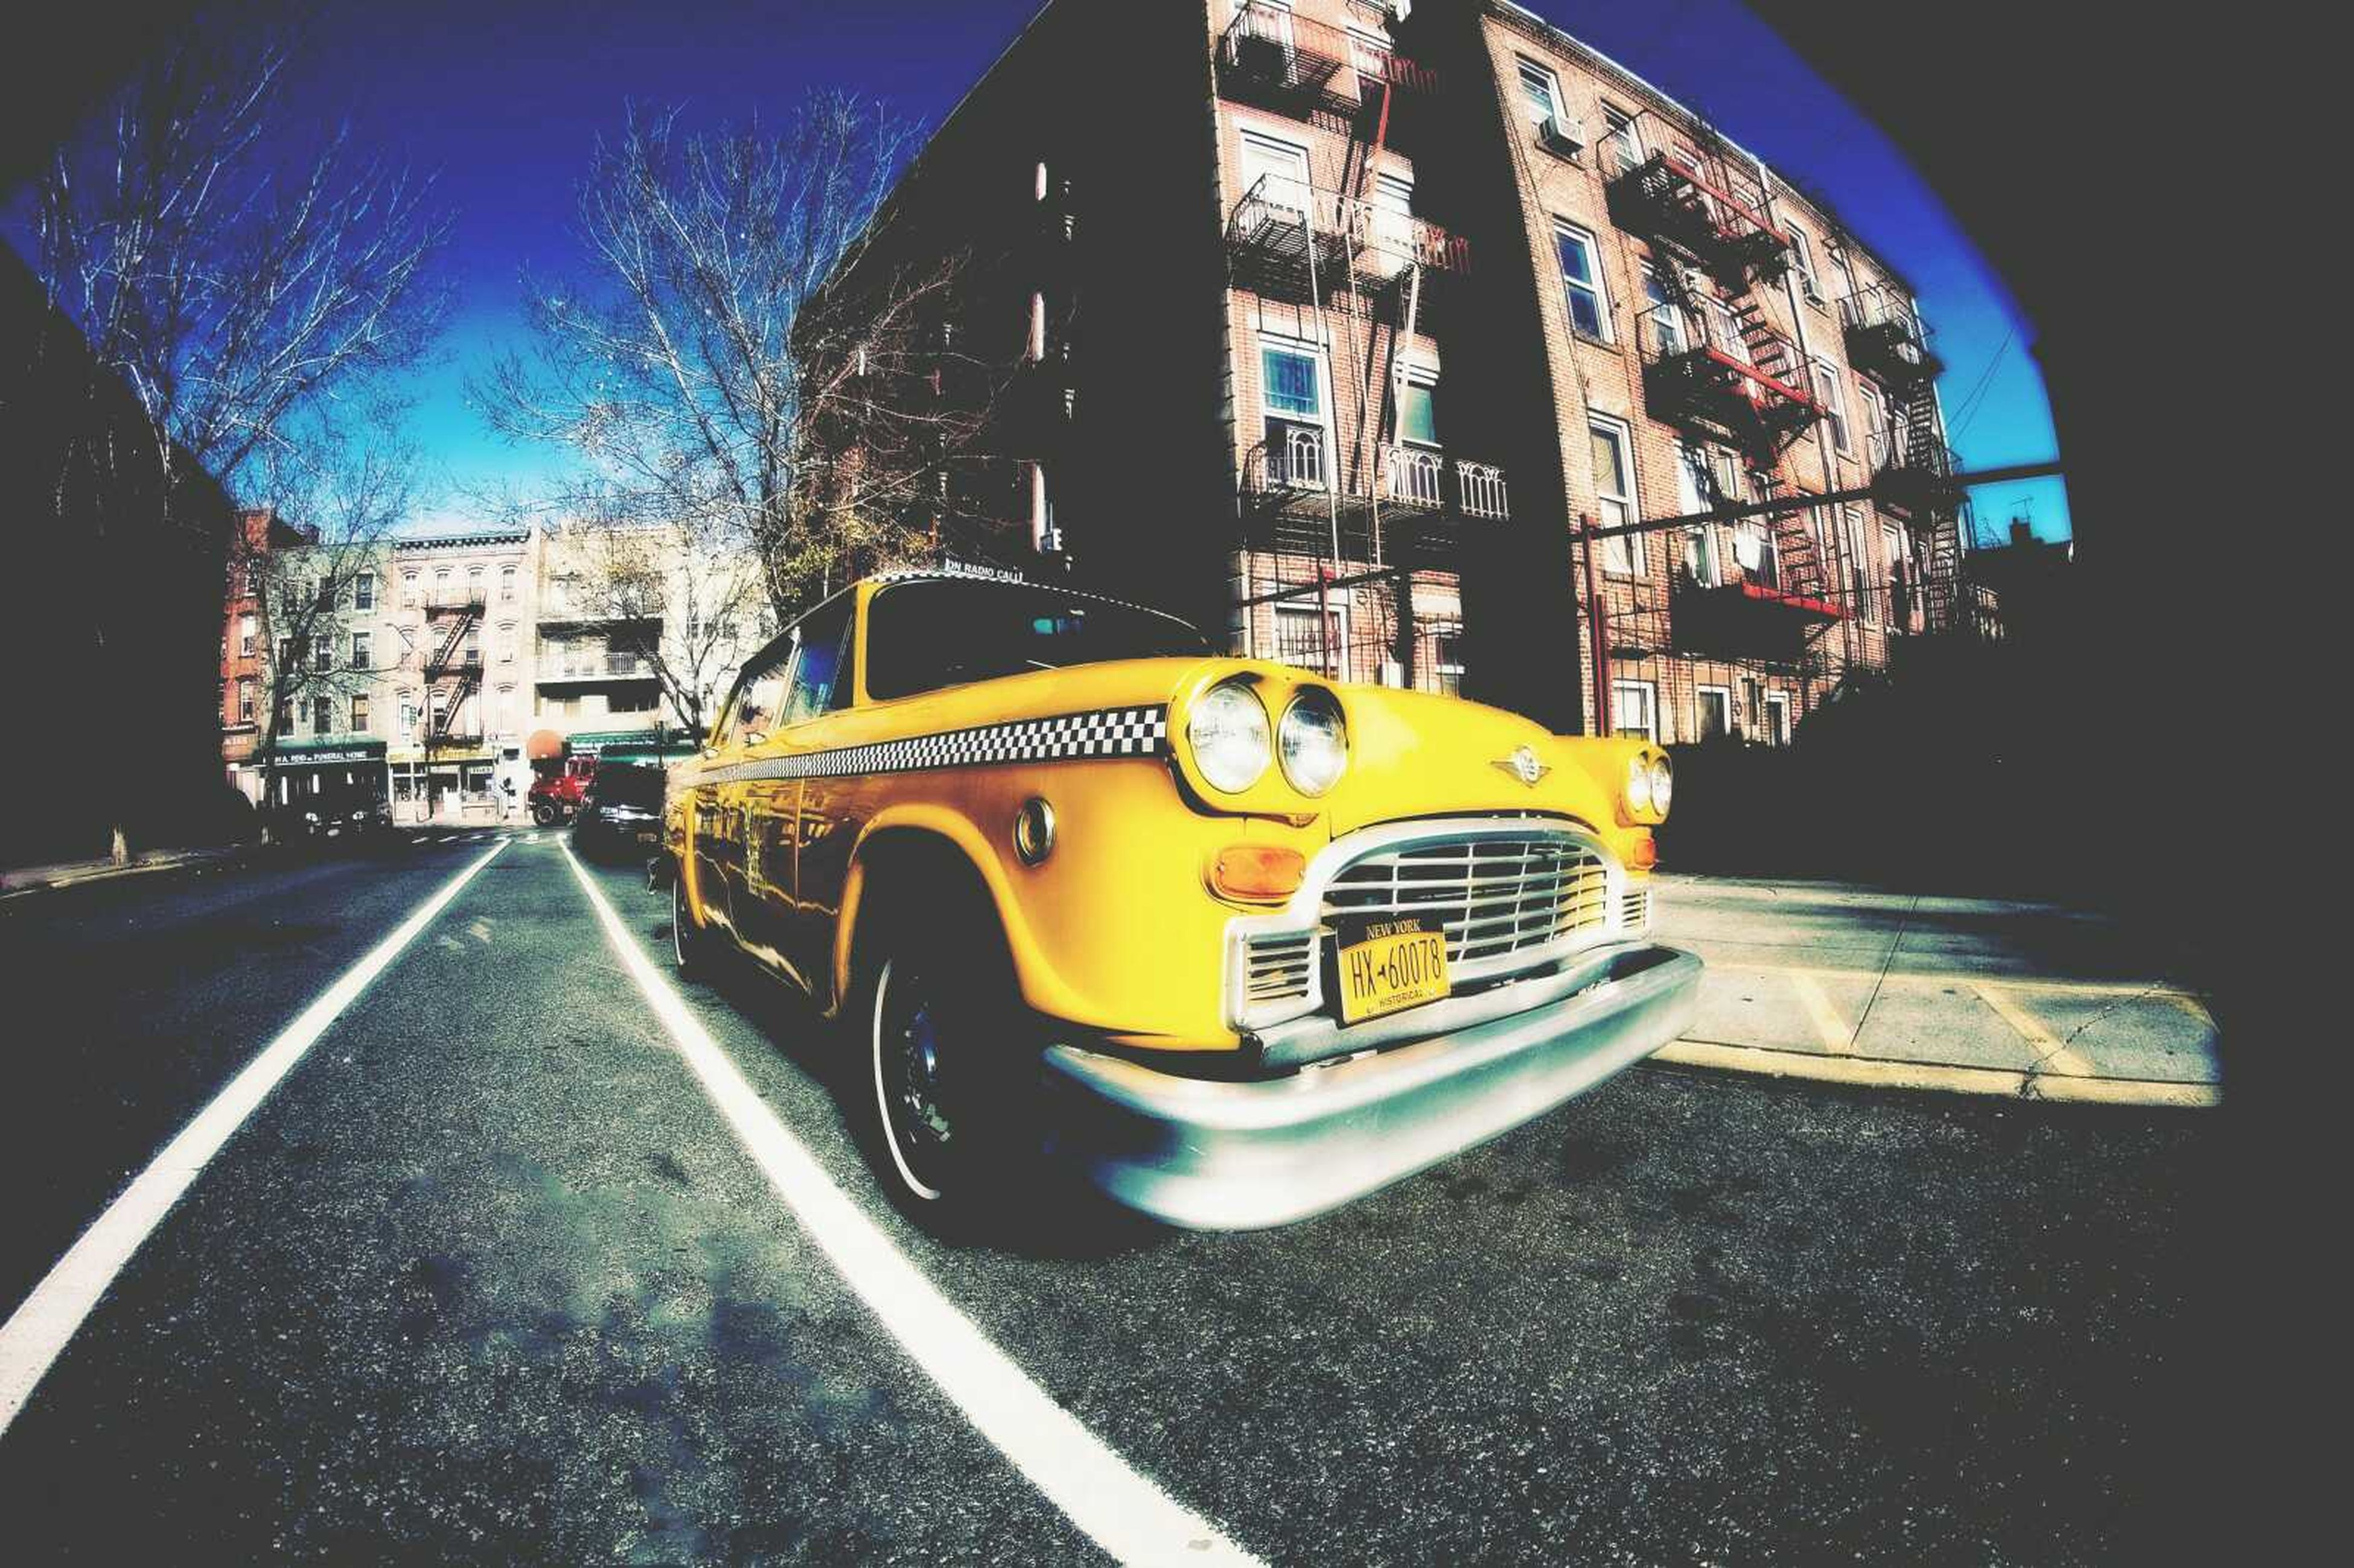 car, yellow, old-fashioned, transportation, city, yellow taxi, no people, outdoors, day